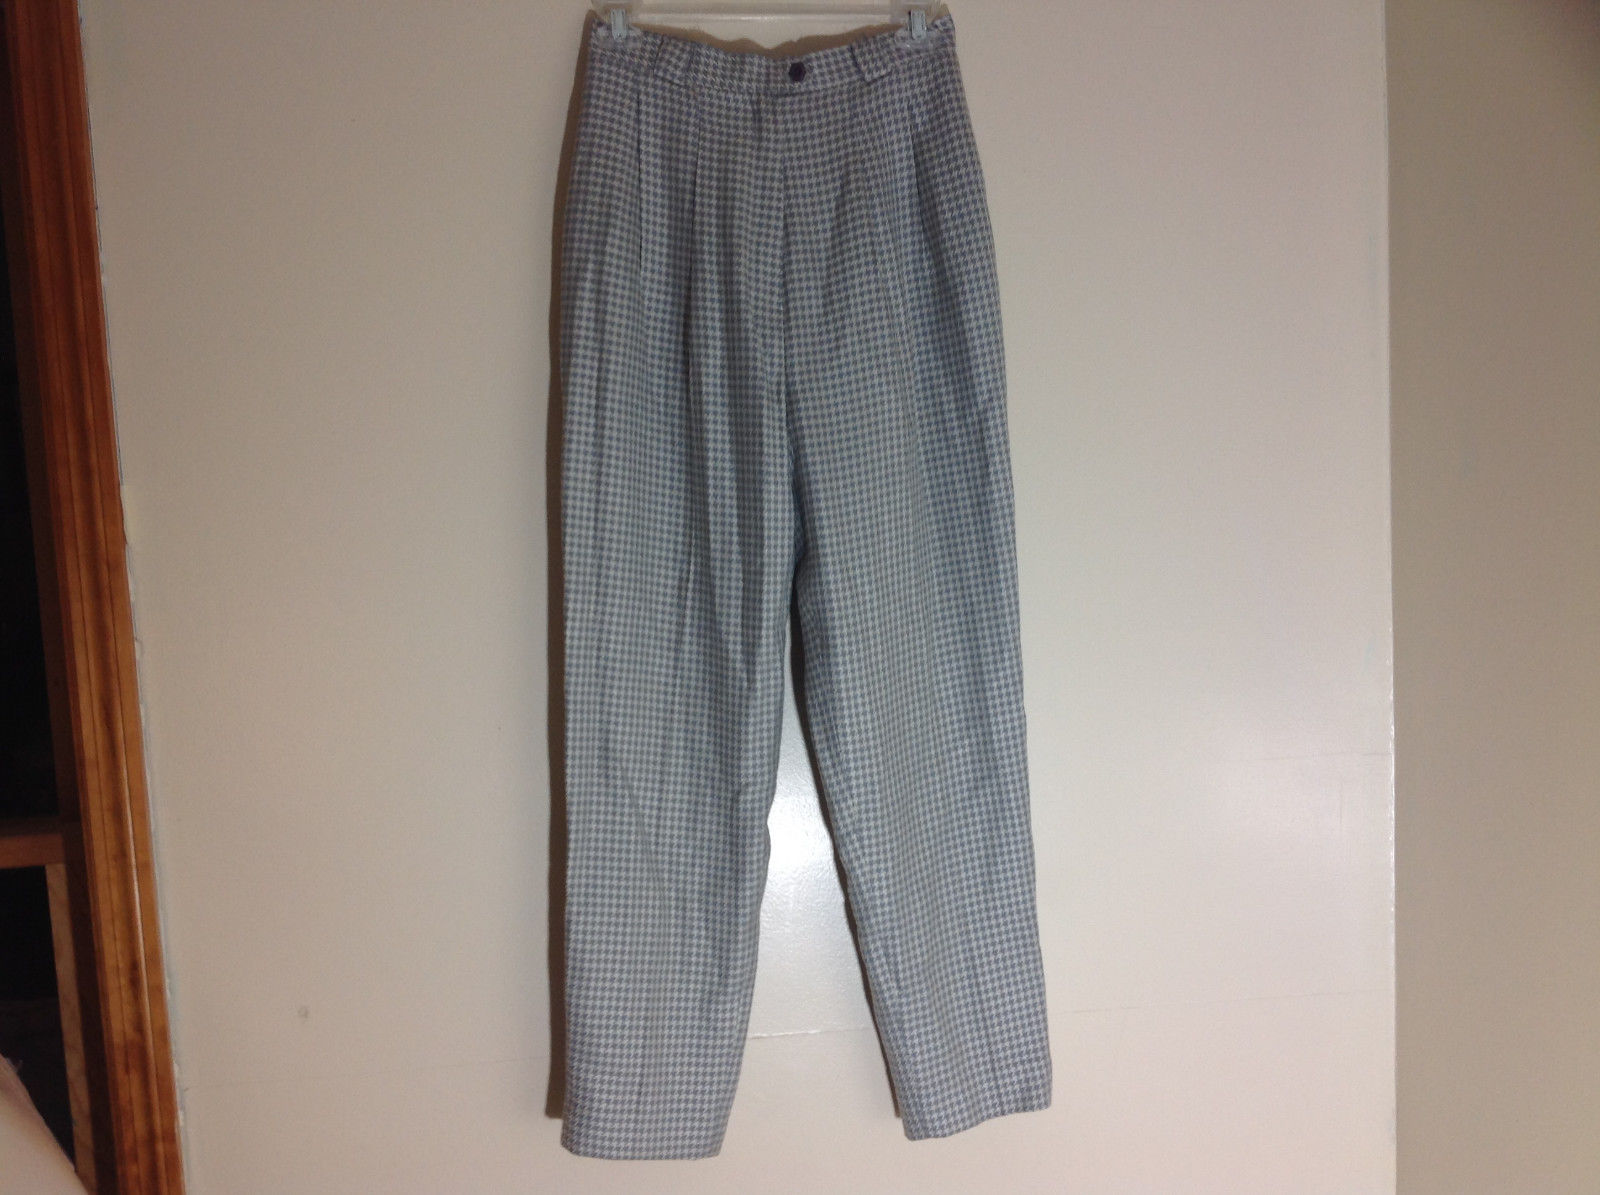 Calliope Light Blue and White Hounds-Tooth Pleated Dress Pants Size 8